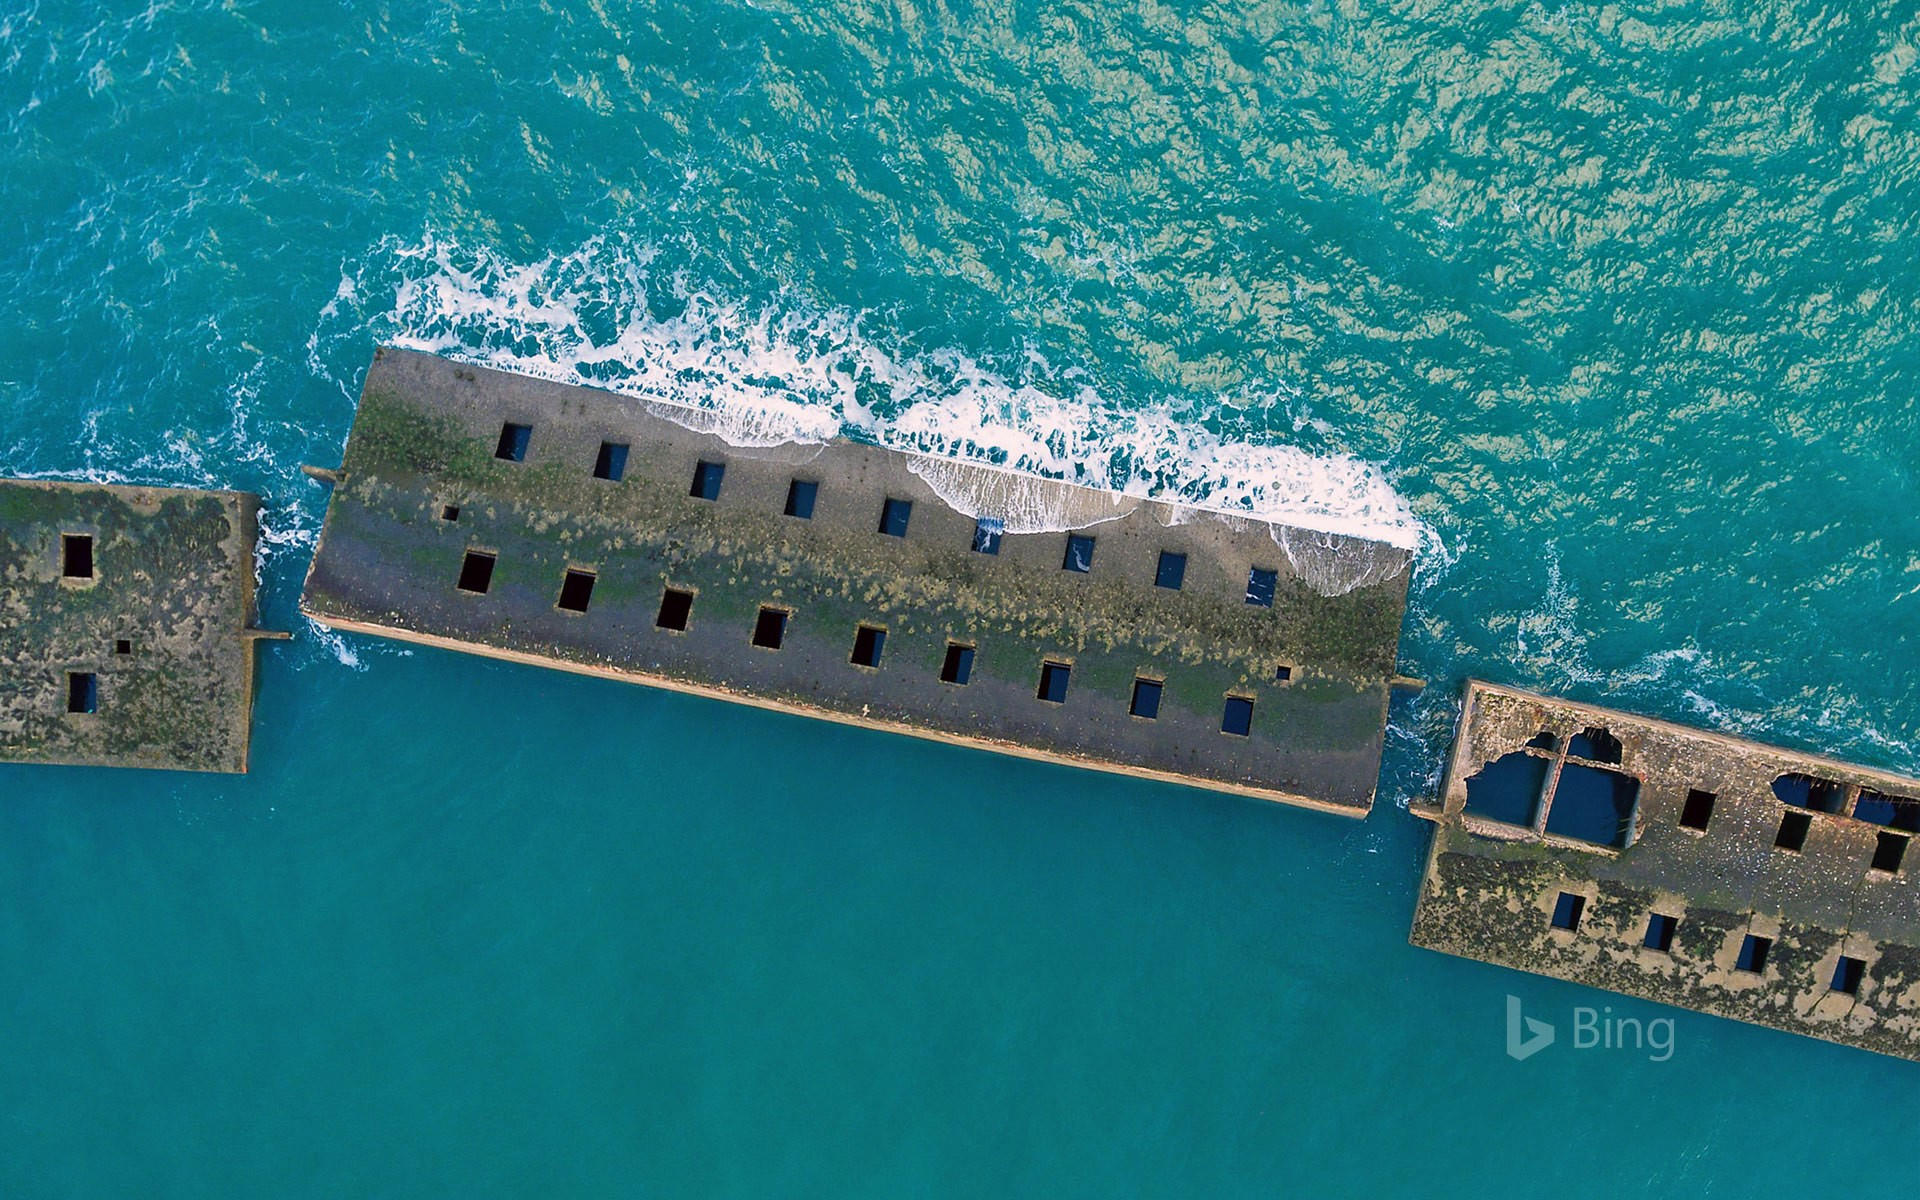 Remains of the Mulberry harbour from the D-Day invasion at Arromanches, Normandy, France